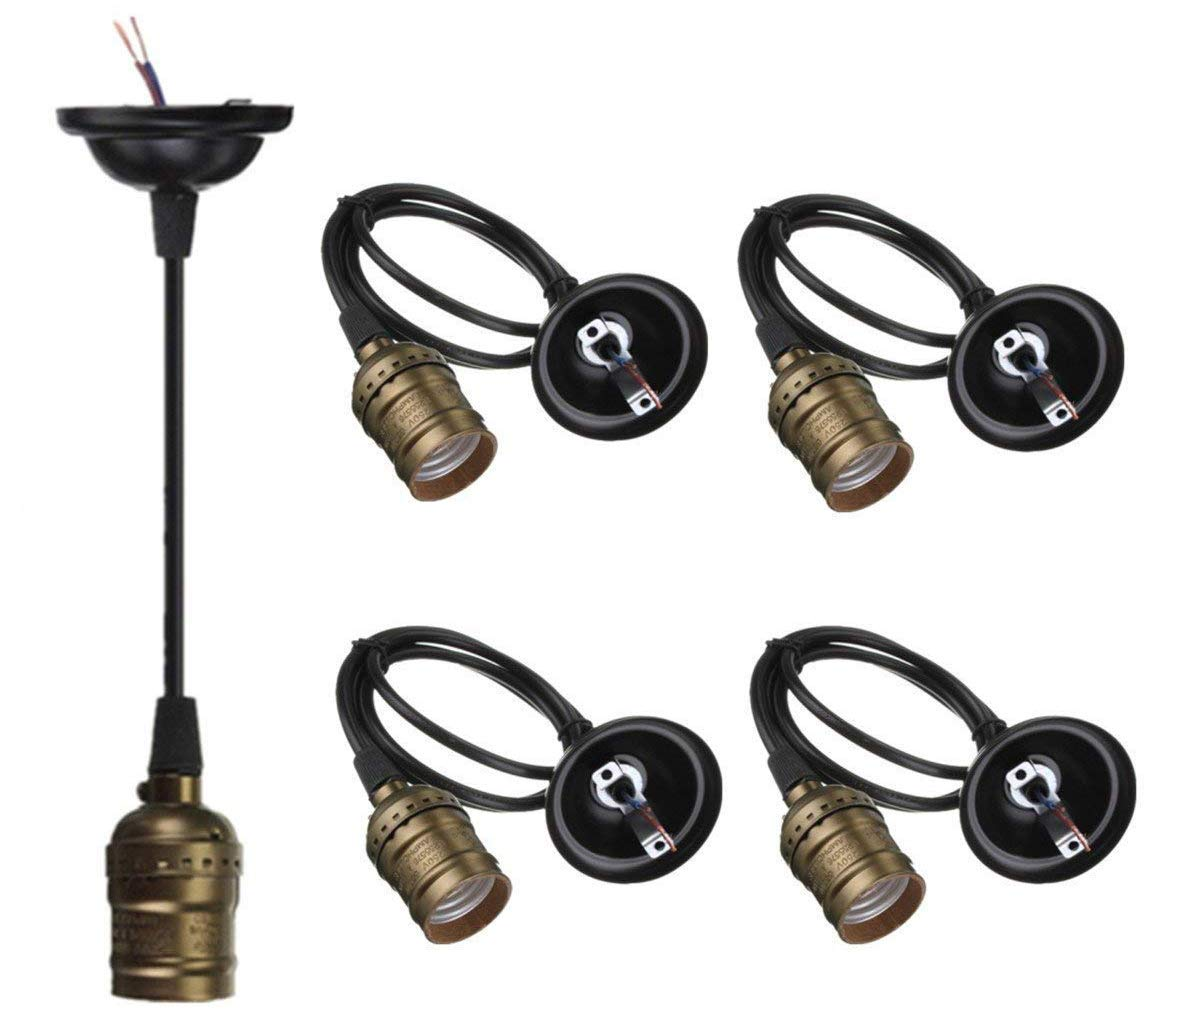 Cheap 3 Wire Lamp Socket Find Deals On Line At Wiring A Metal Holder Get Quotations Ctkcom E26 E27 Pendant Edison Vintage Holder4 Pack